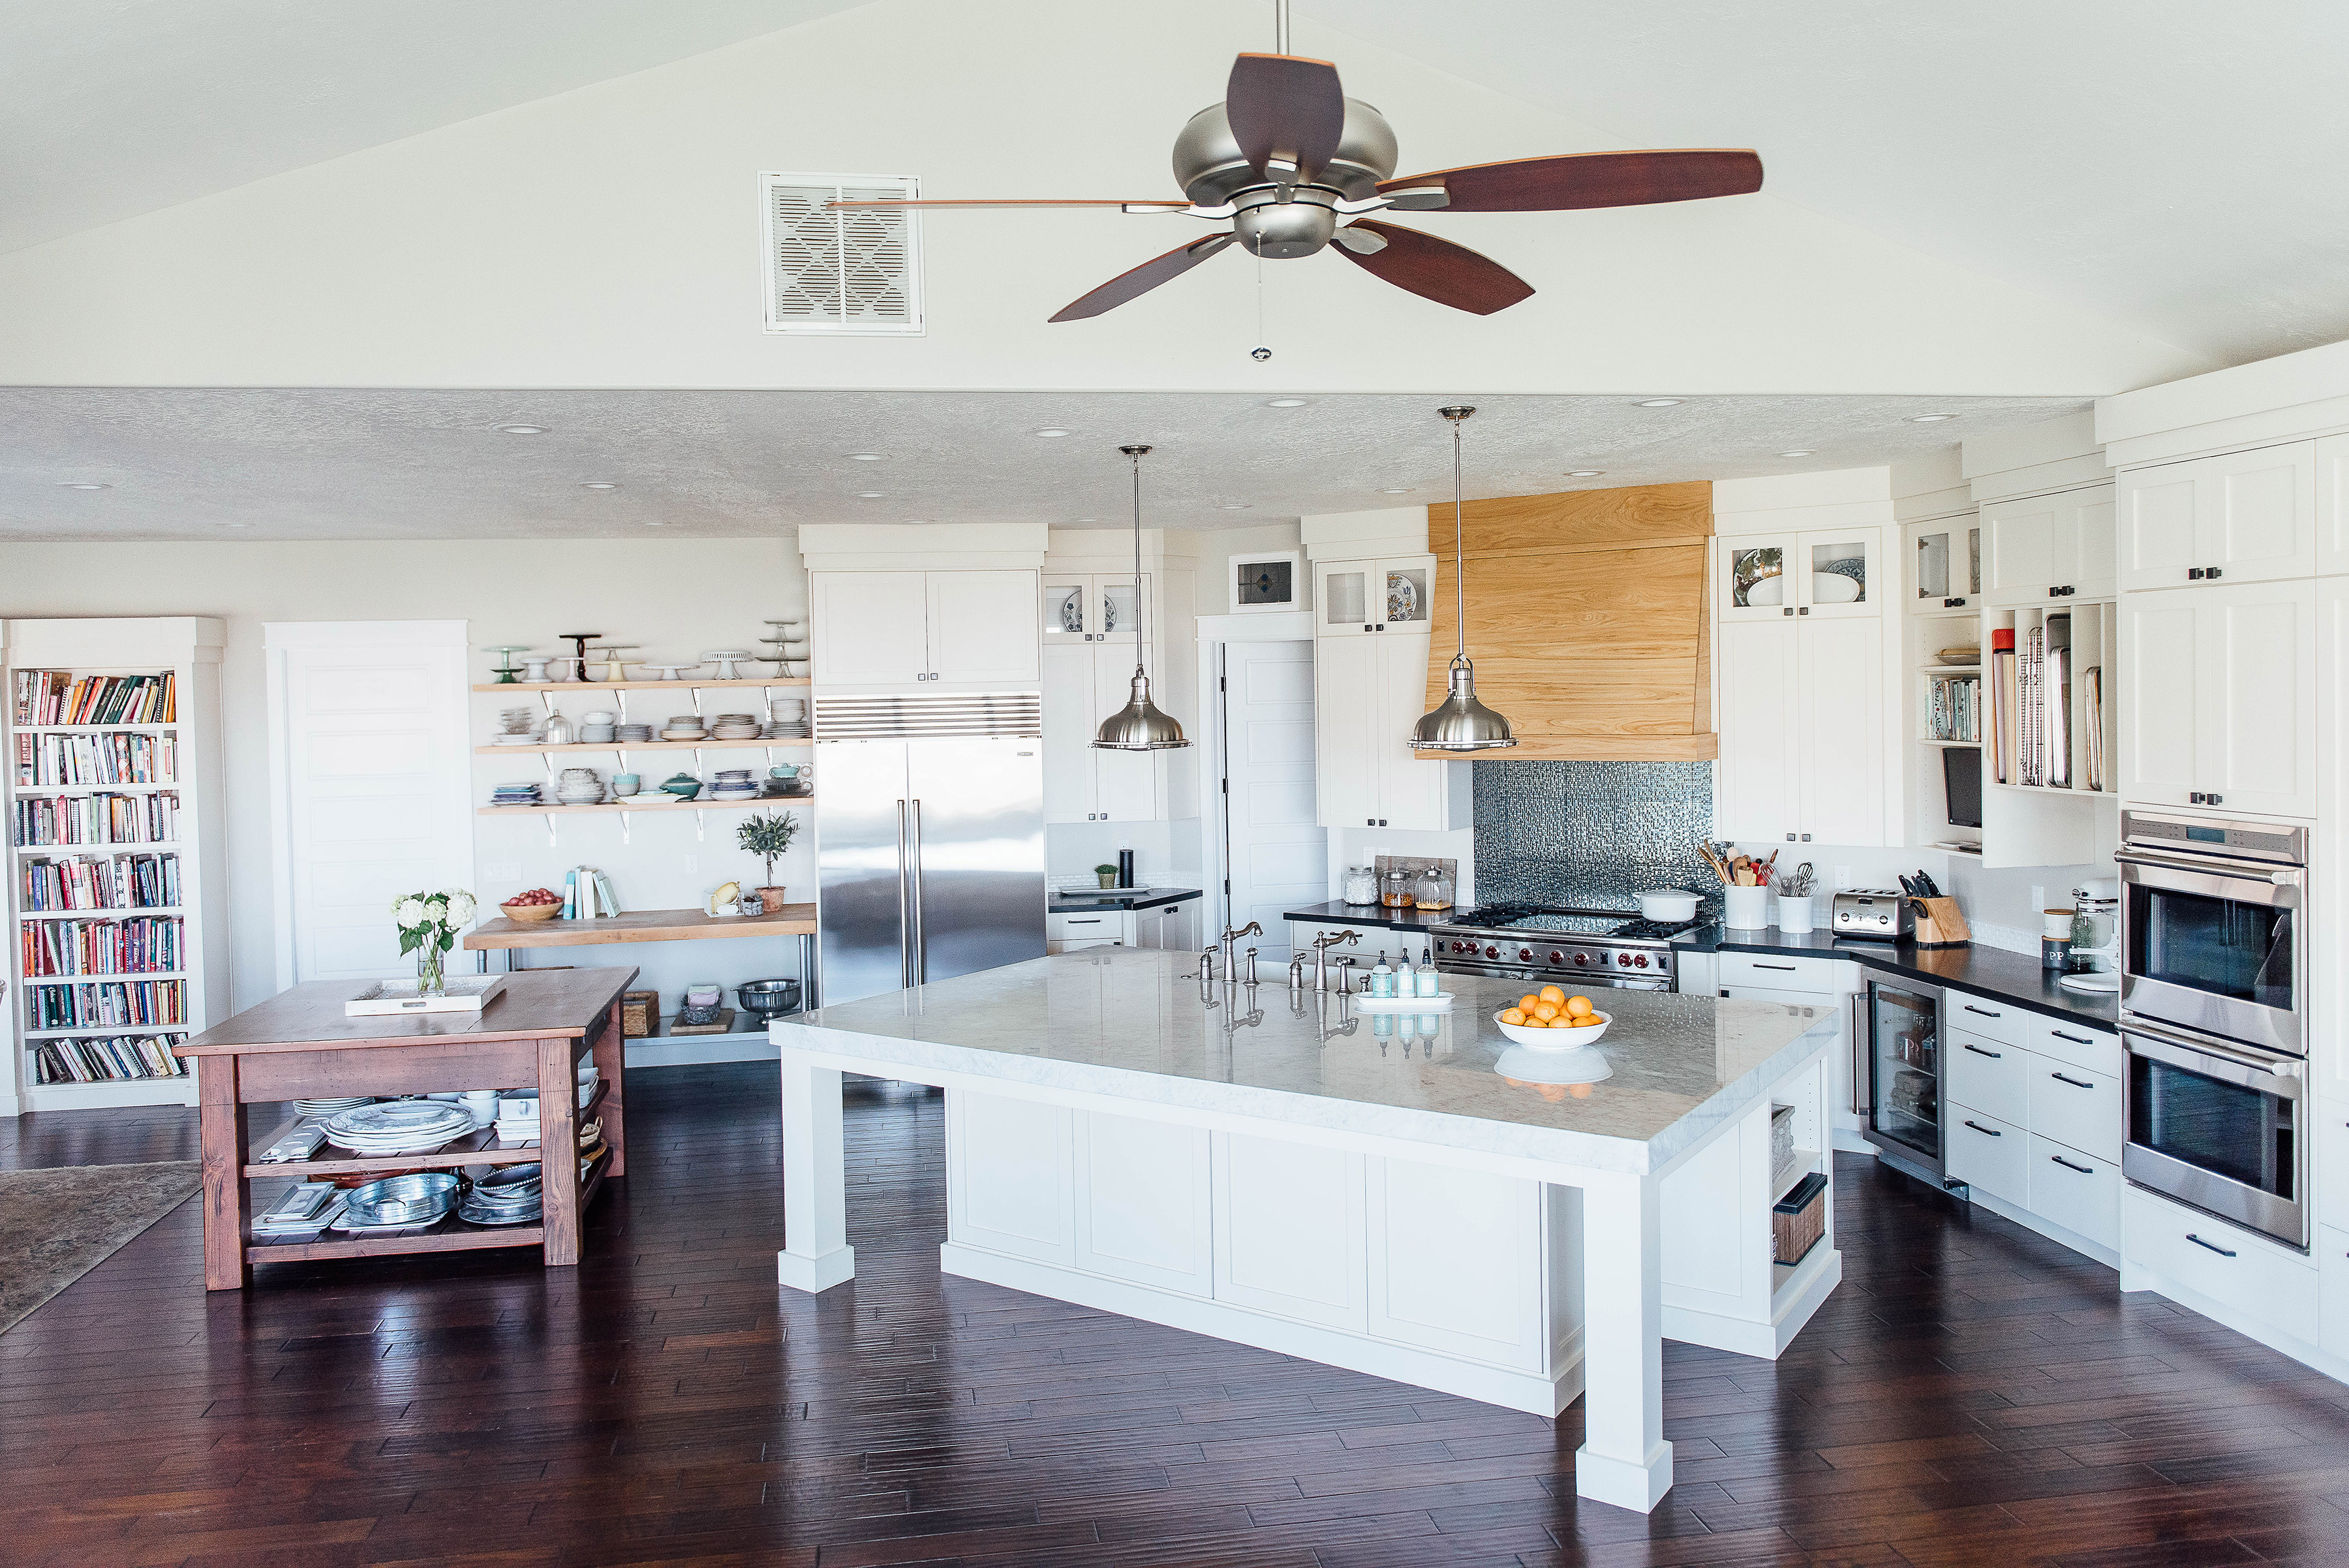 10 Tips for designing a kitchen   A Bountiful Kitchen